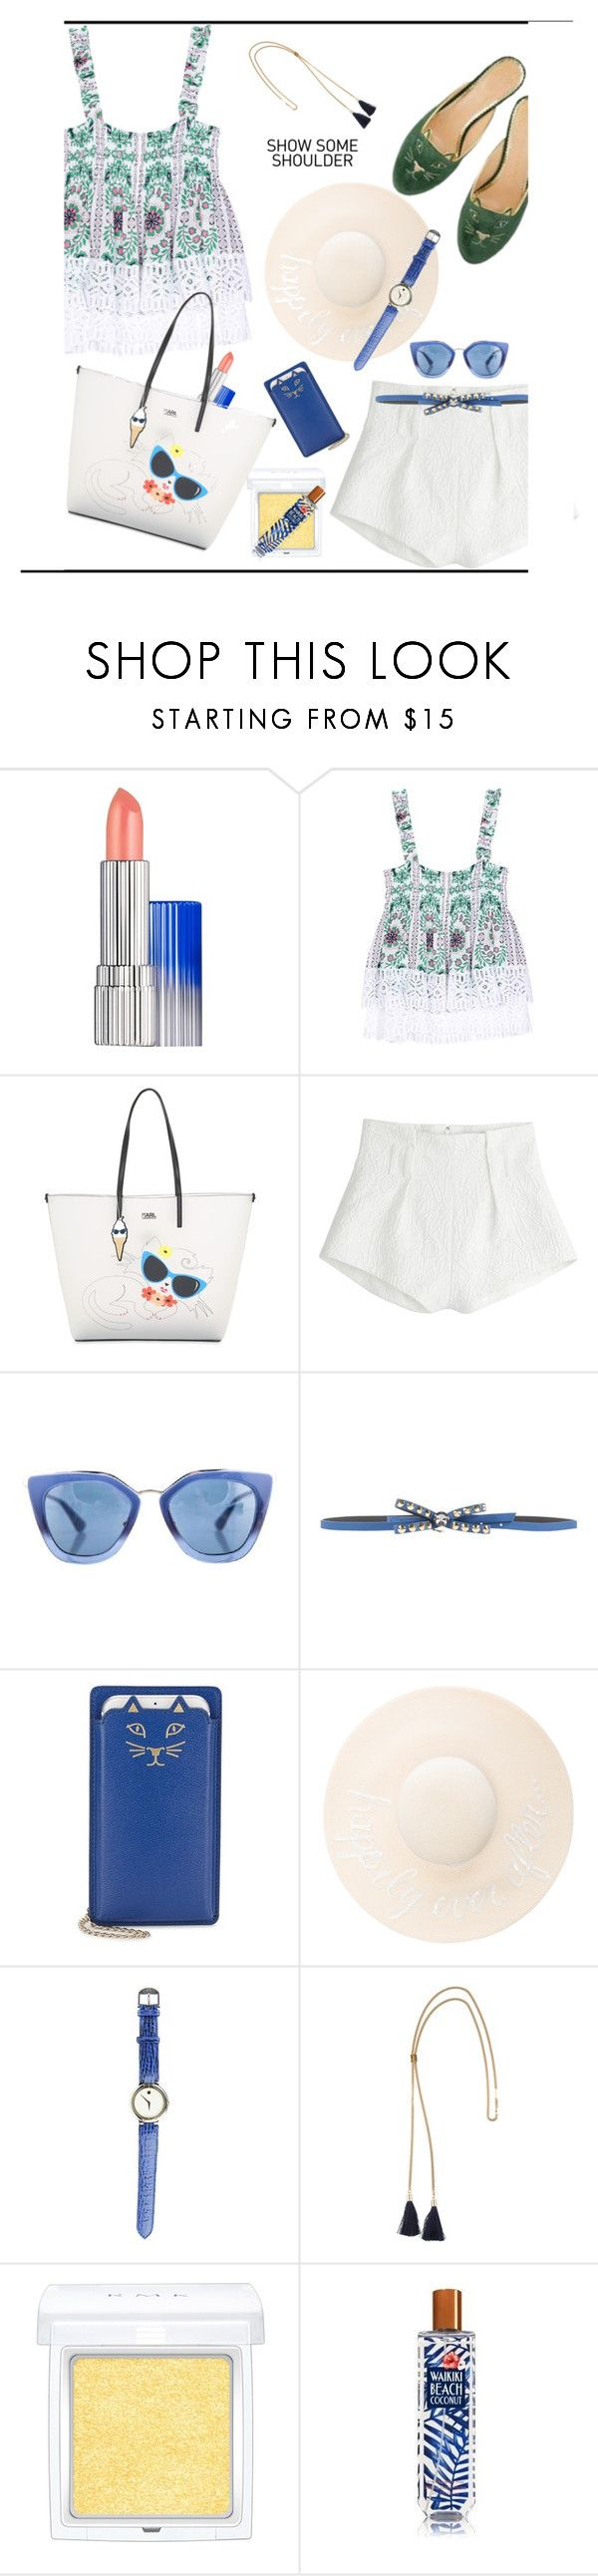 """Shimmy, Shimmy: Off-Shoulder Tops♥♥♥"" by marthalux ❤ liked on Polyvore featuring Estée Lauder, Karl Lagerfeld, Mary Katrantzou, Prada, Argento Antico, Charlotte Olympia, Eugenia Kim, Movado, Chloé and RMK"